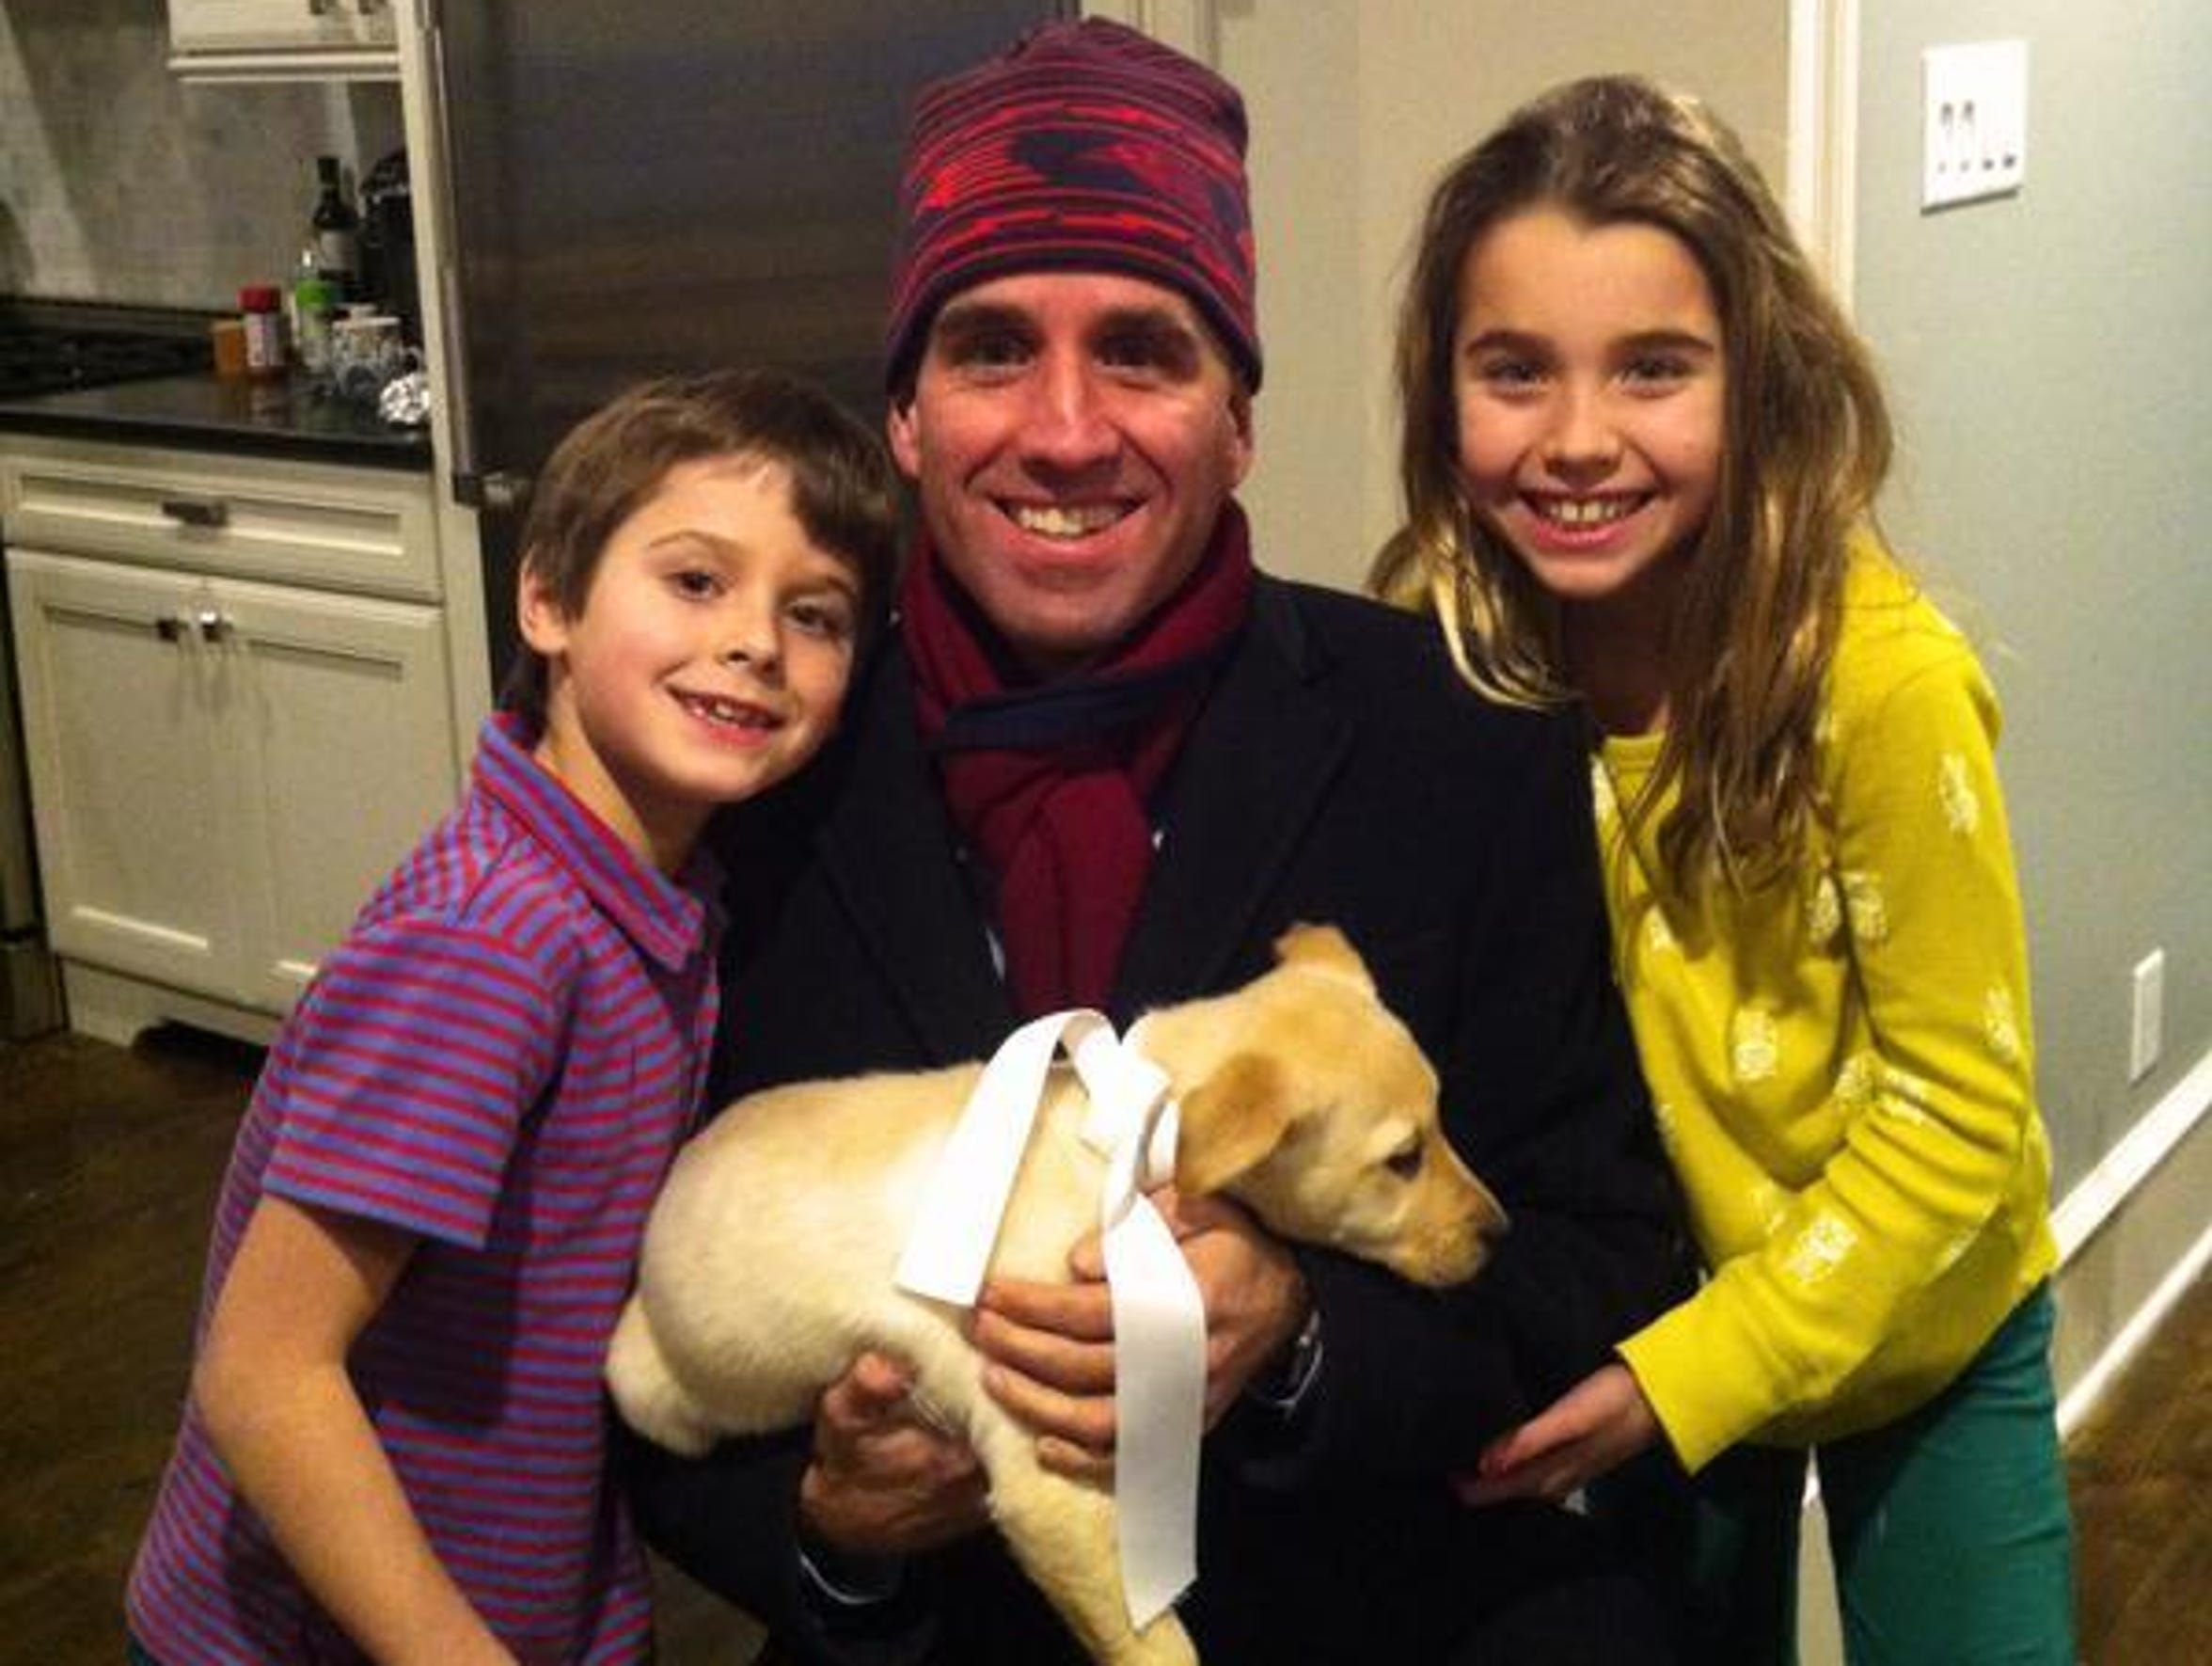 Beau Biden posted this picture on his personal Twitter